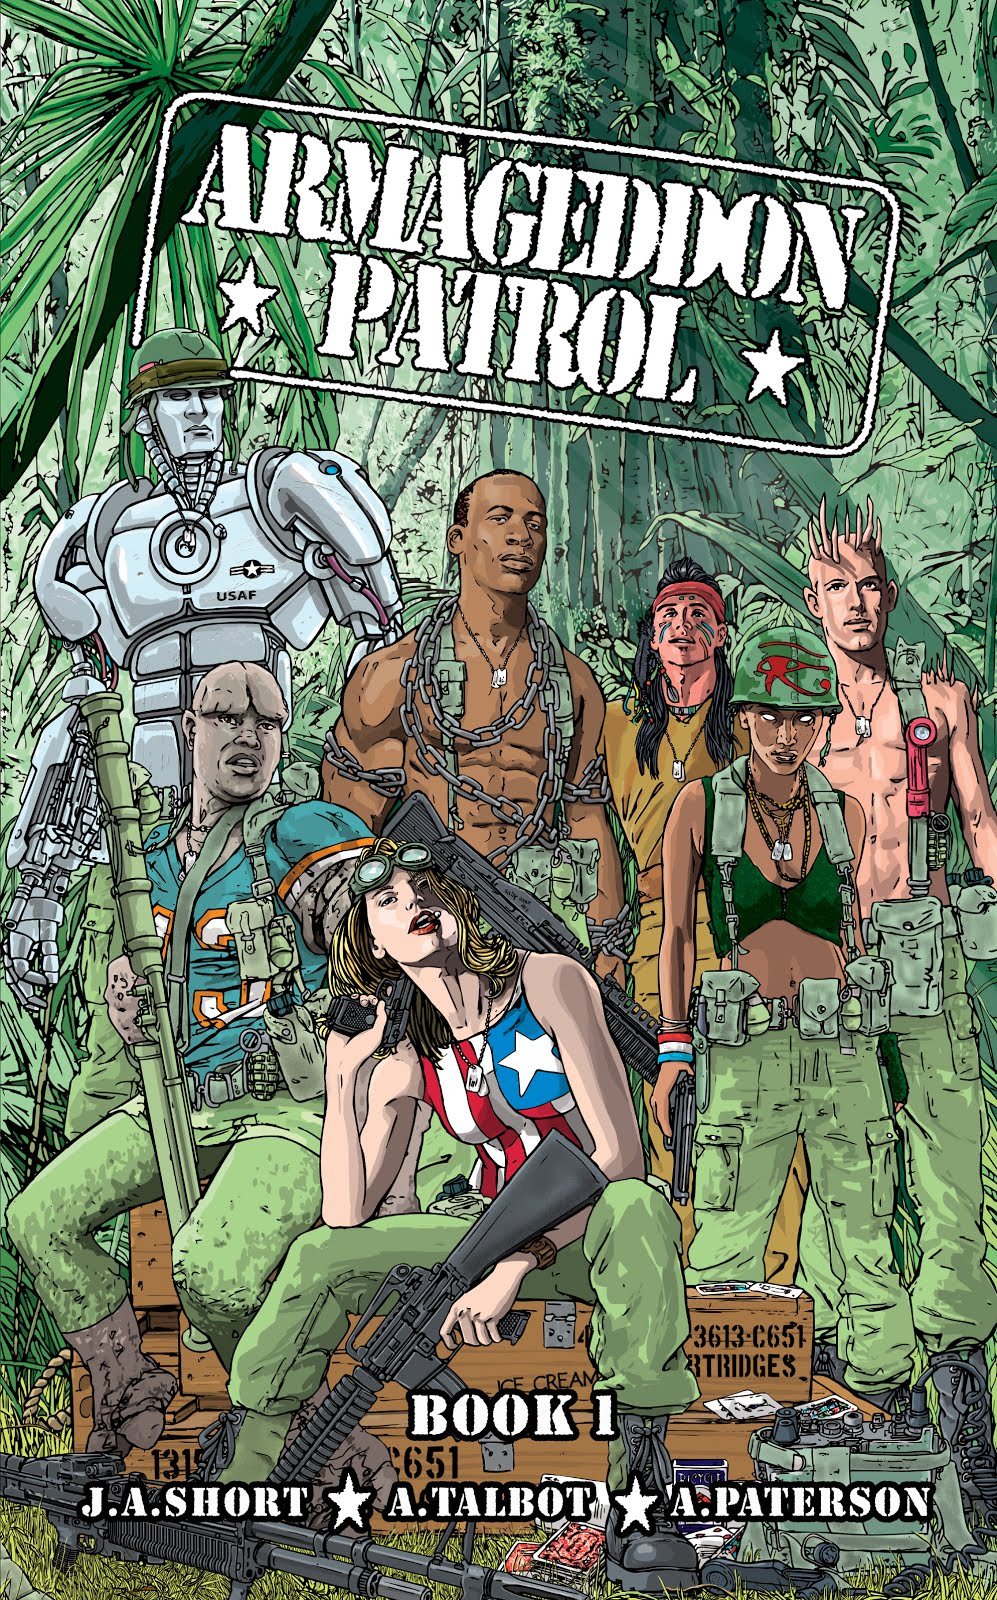 Buy 'Armageddon Patrol Book 1' below!